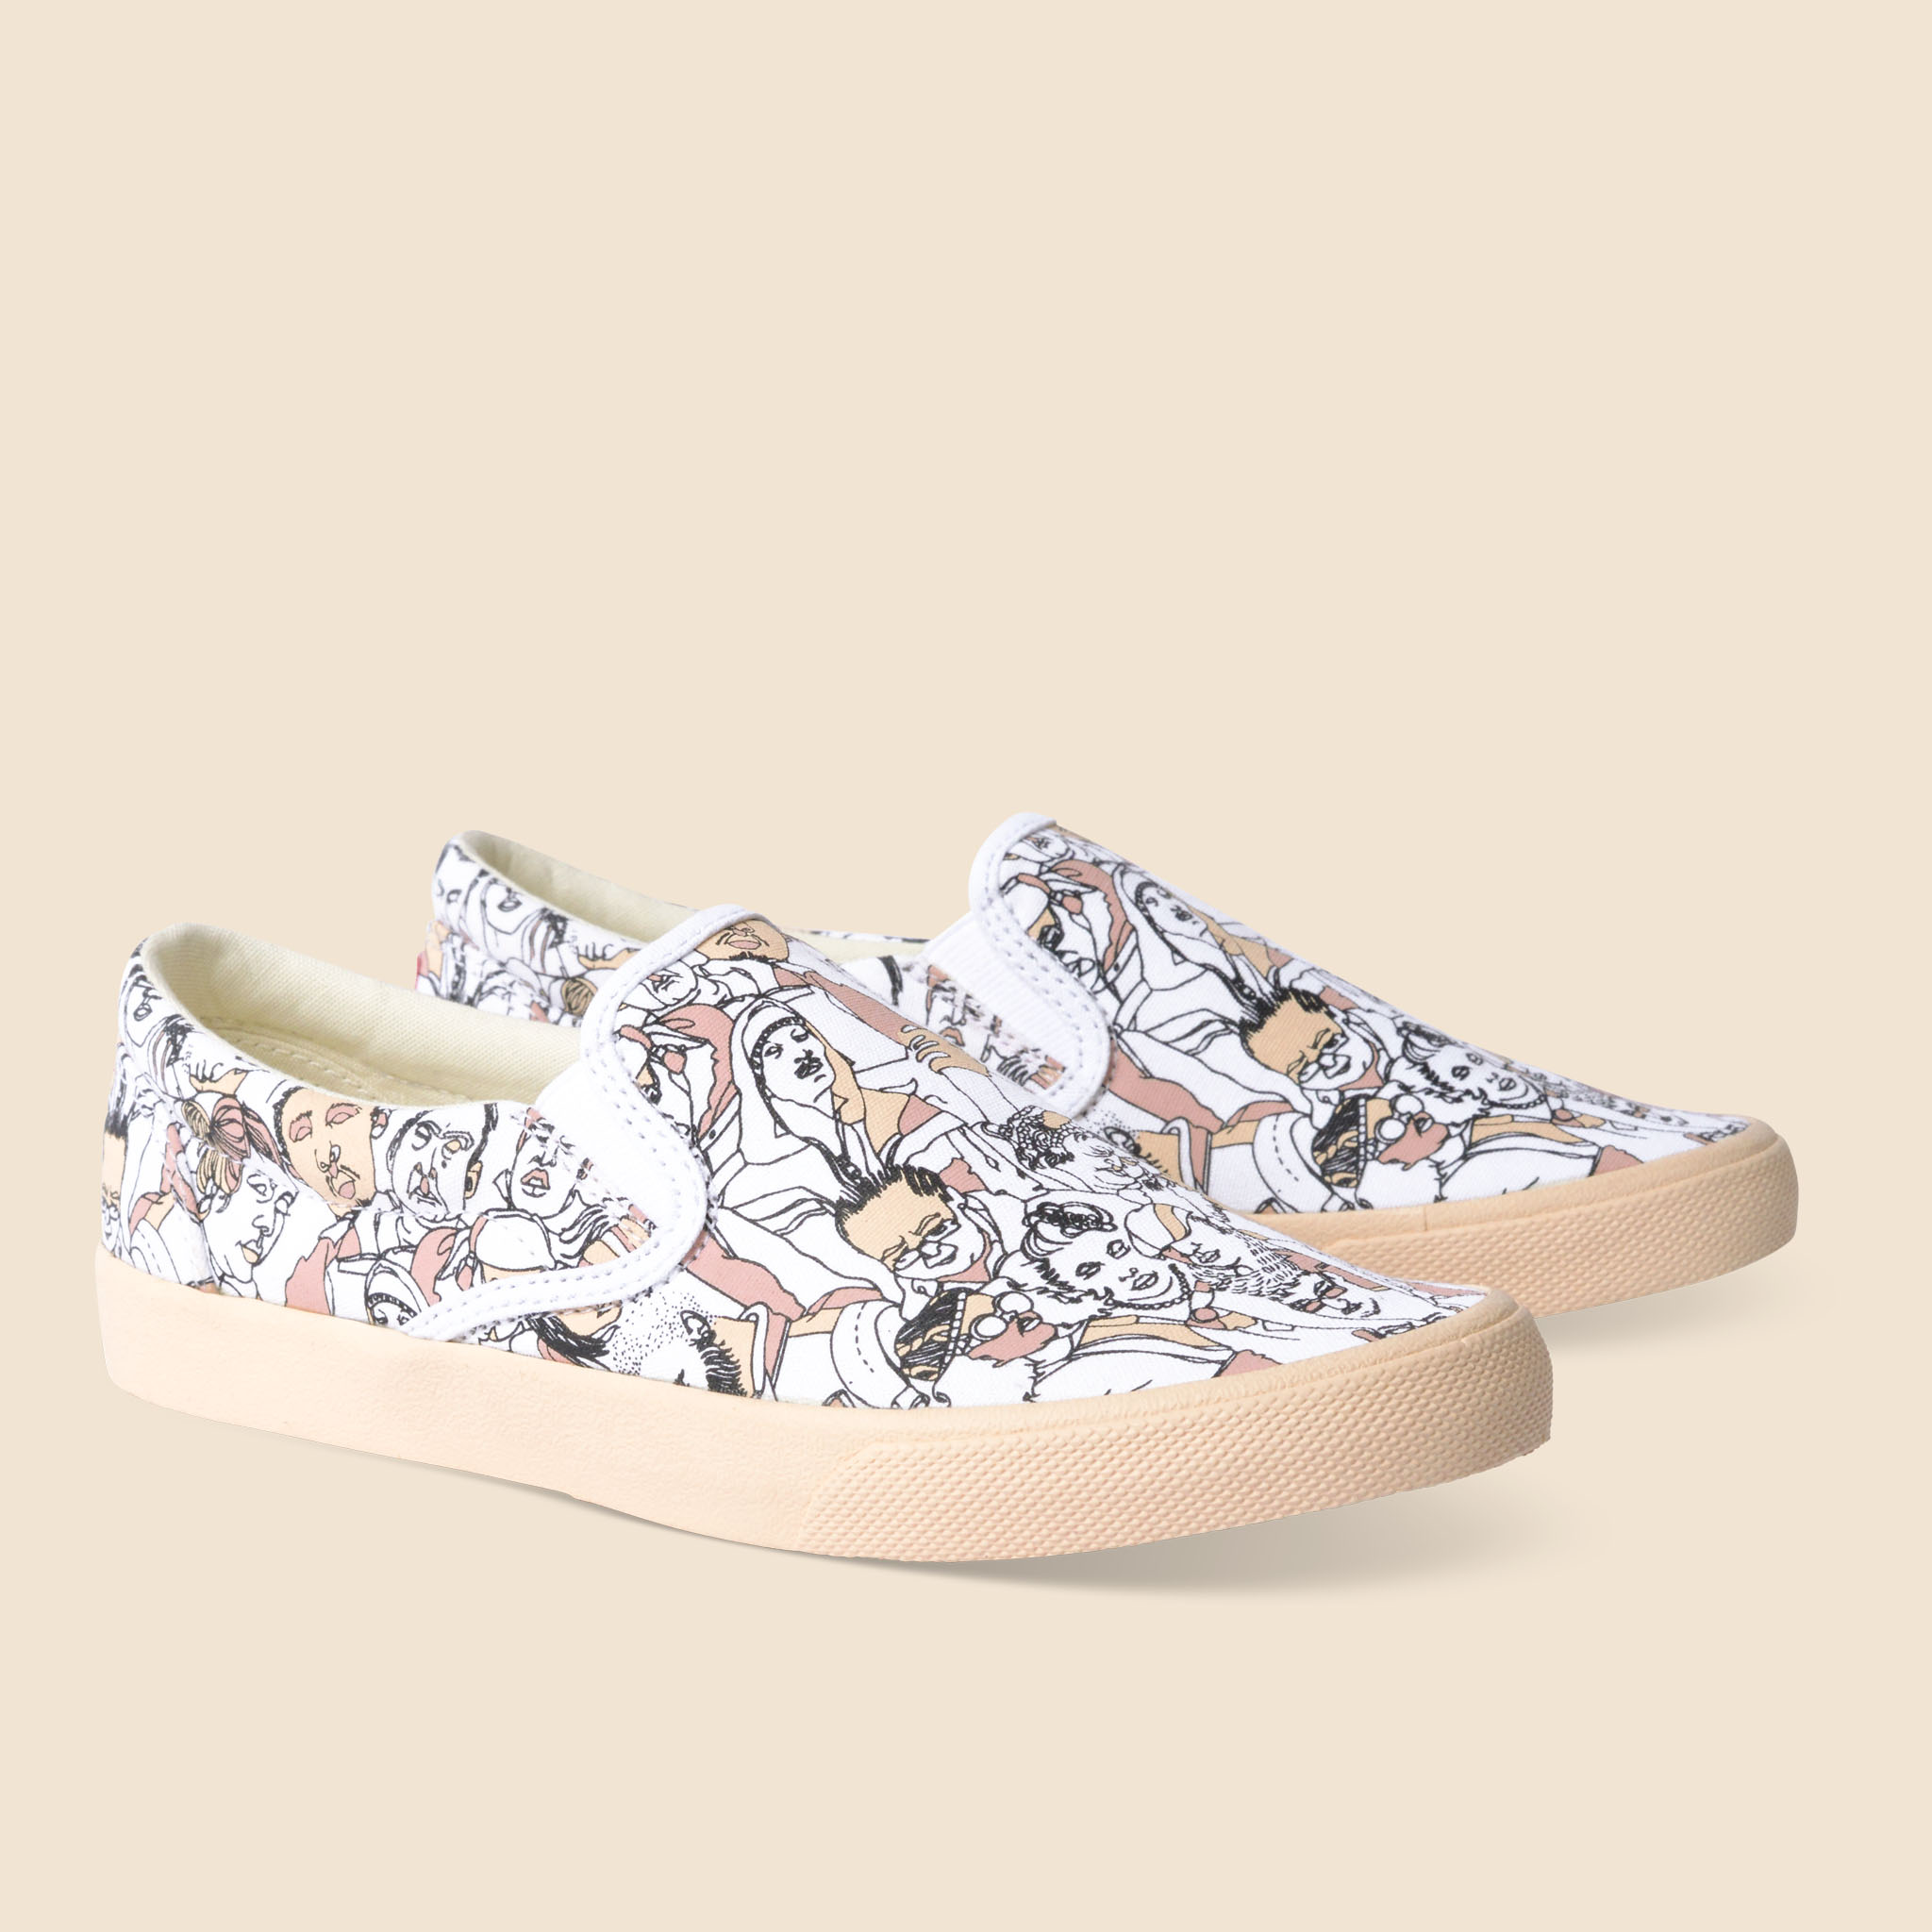 Bucketfeet Shoe Collaboration 2017 Spring Collection    Neutral Peeps  is my second shoe design for the brand Bucketfeet. I chose to use pastel colors to create a soft and airy feel. To purchase click  HERE